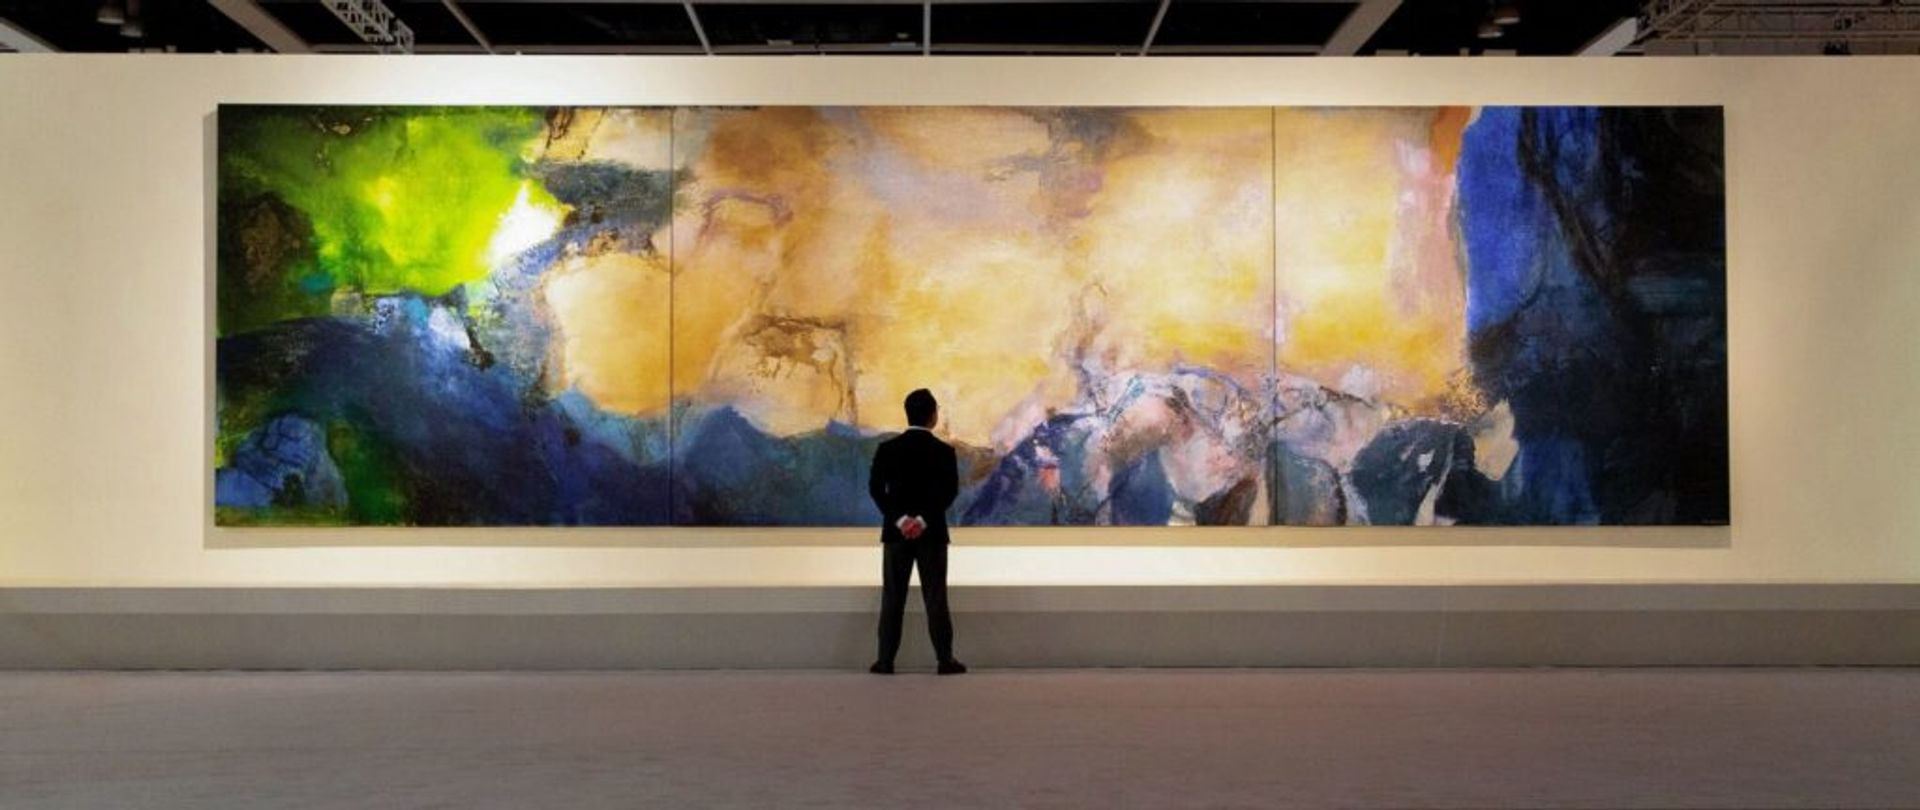 Zao Wou-Ki's triptych, Juin-Octobre 1985, set three records at Sotheby's Hong Kong when it sold for $65m in October 2018. Sotheby's